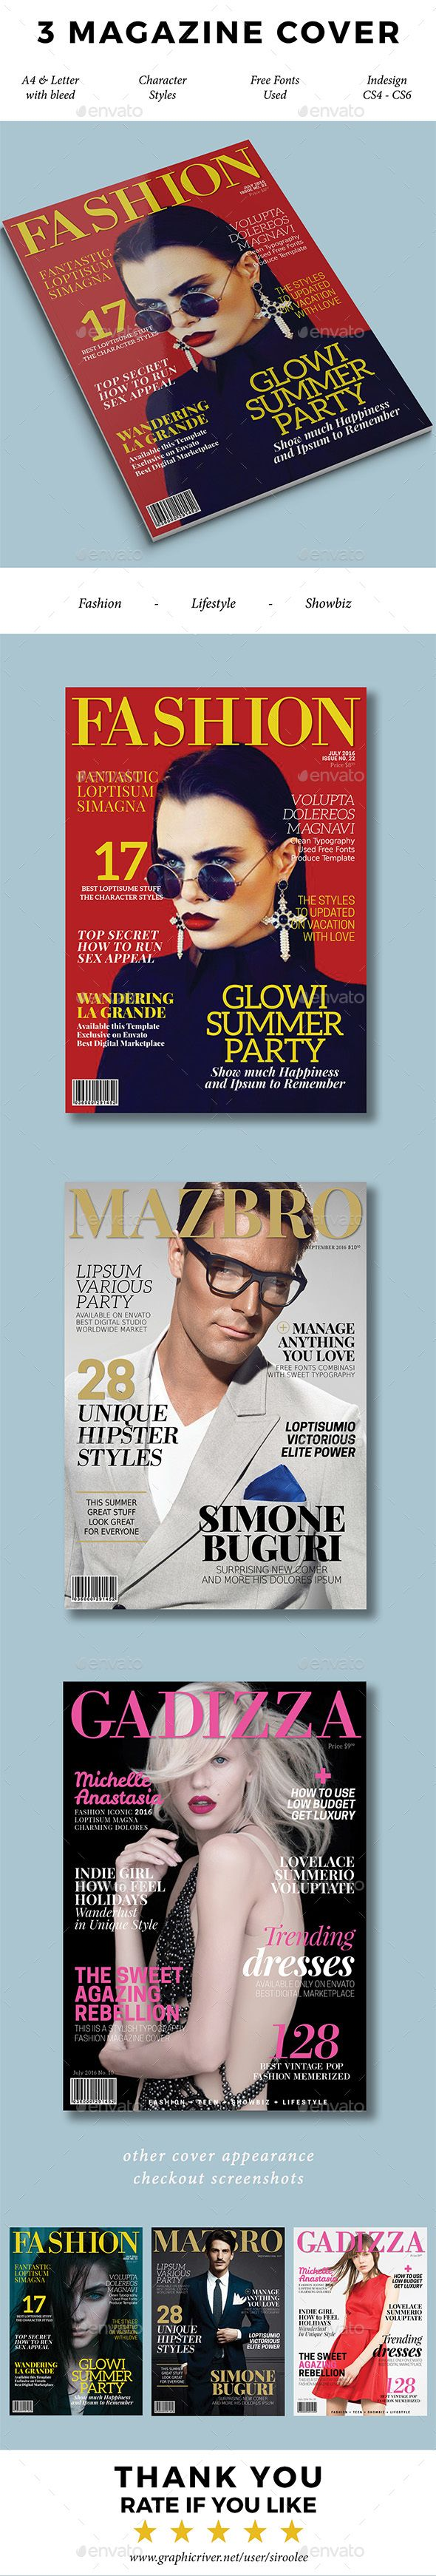 3 Magazine Covers By Siroolee 3 Stylish Magazine Cover Templates In